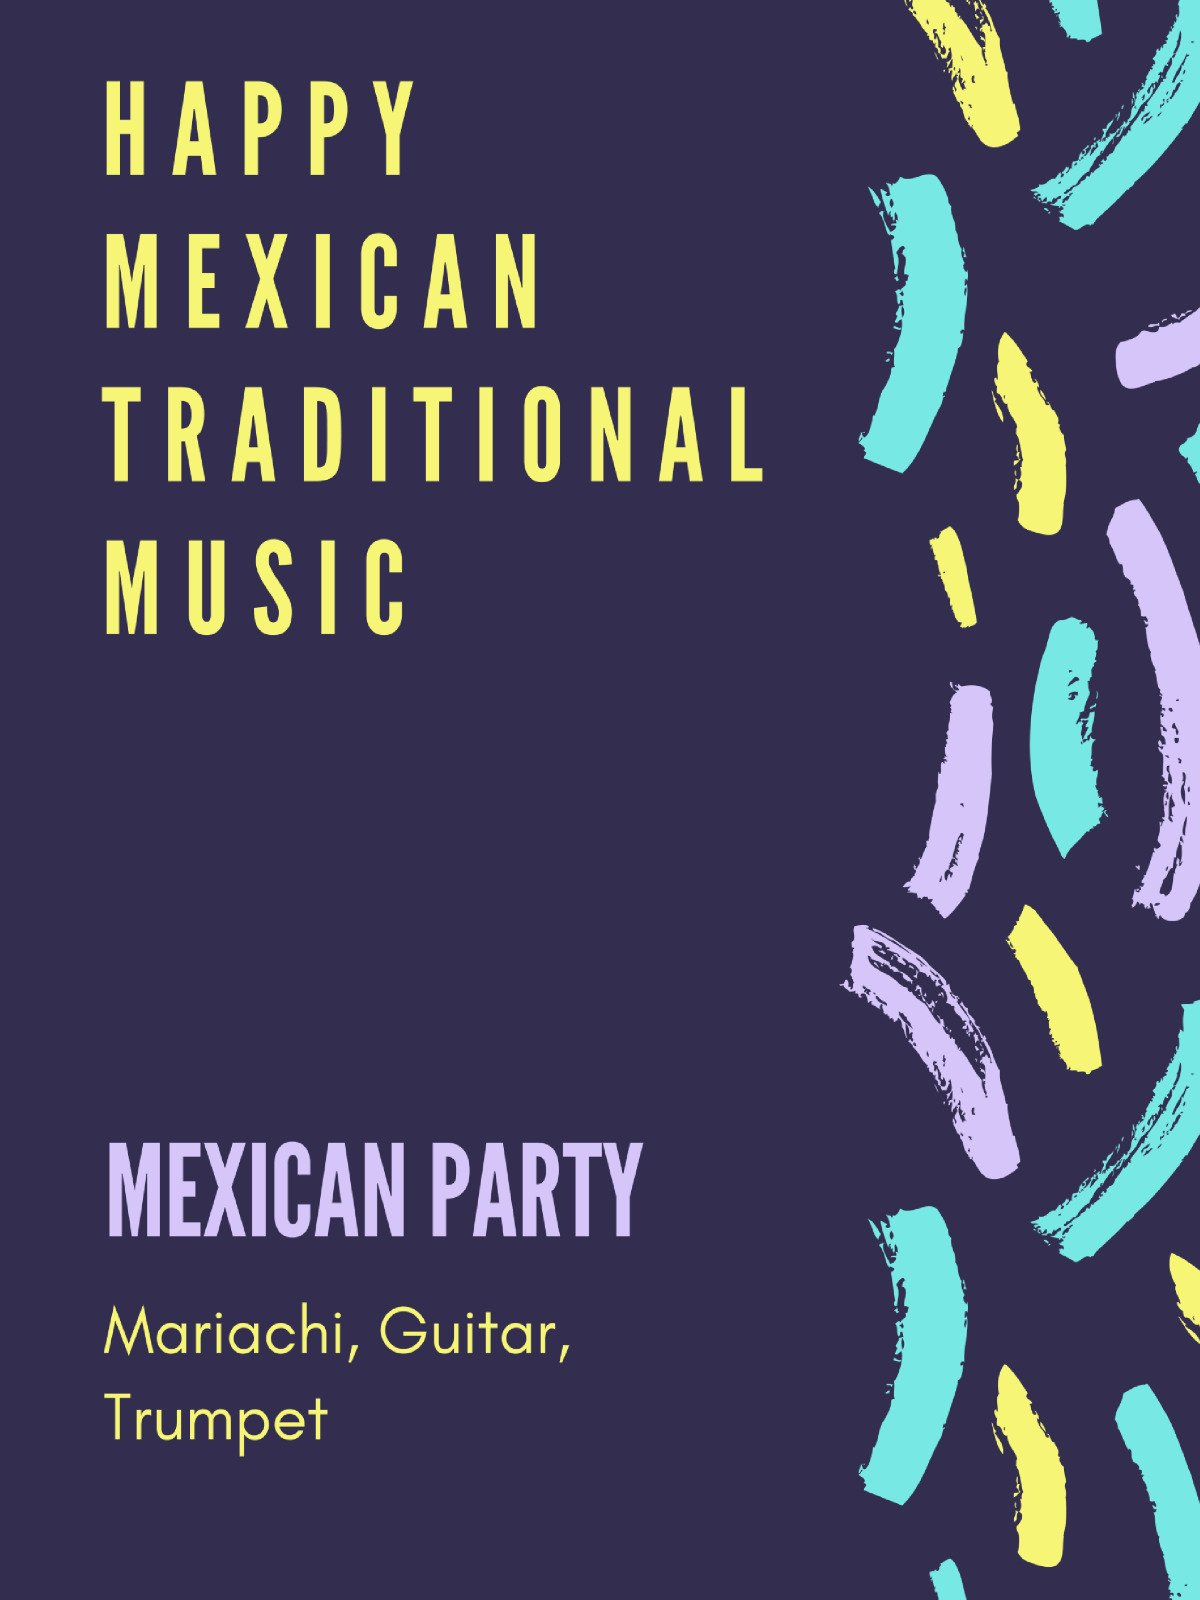 Happy Mexican Traditional Music